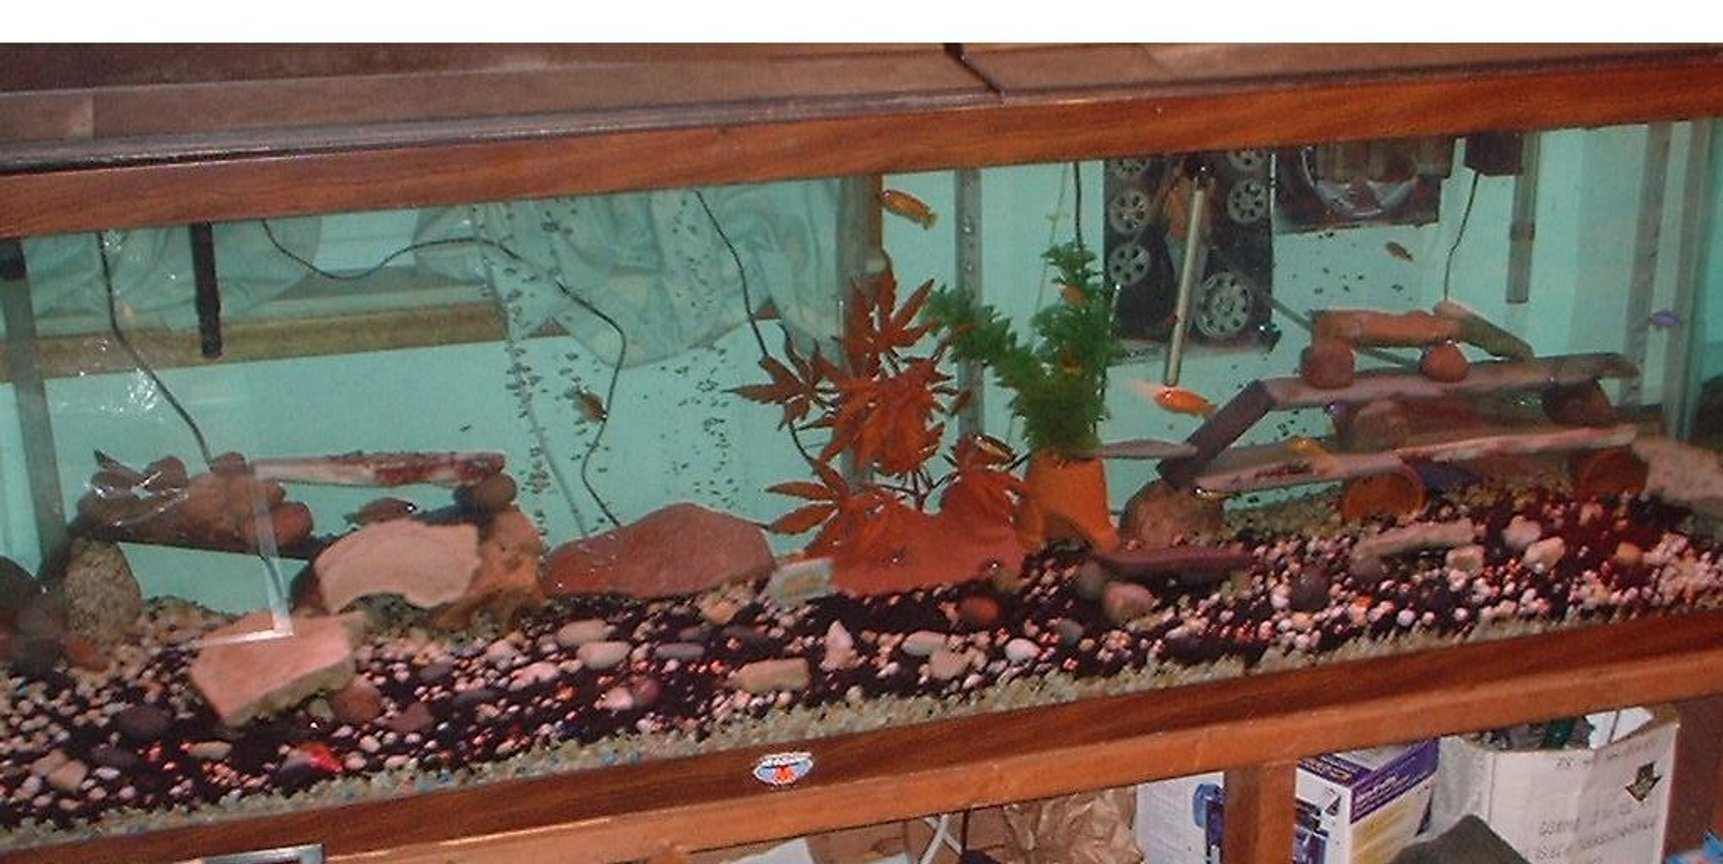 freshwater fish tank (mostly fish and non-living decorations) - 150 gallon Cichlid tank